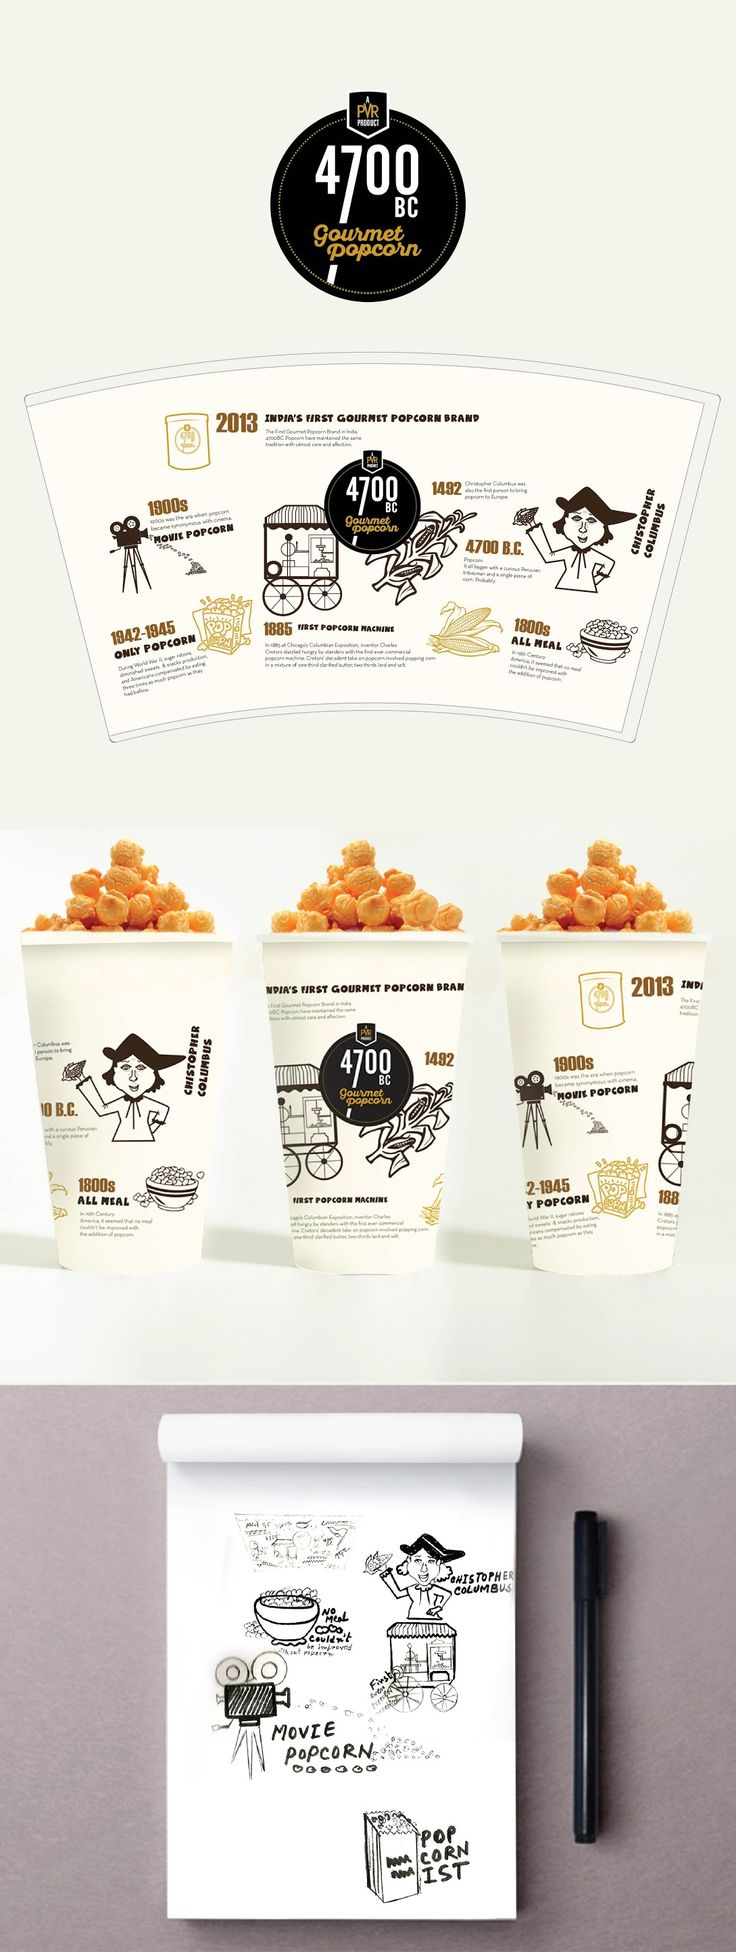 4700 BC Popcorn on Packaging of the World - Creative Package Design Gallery